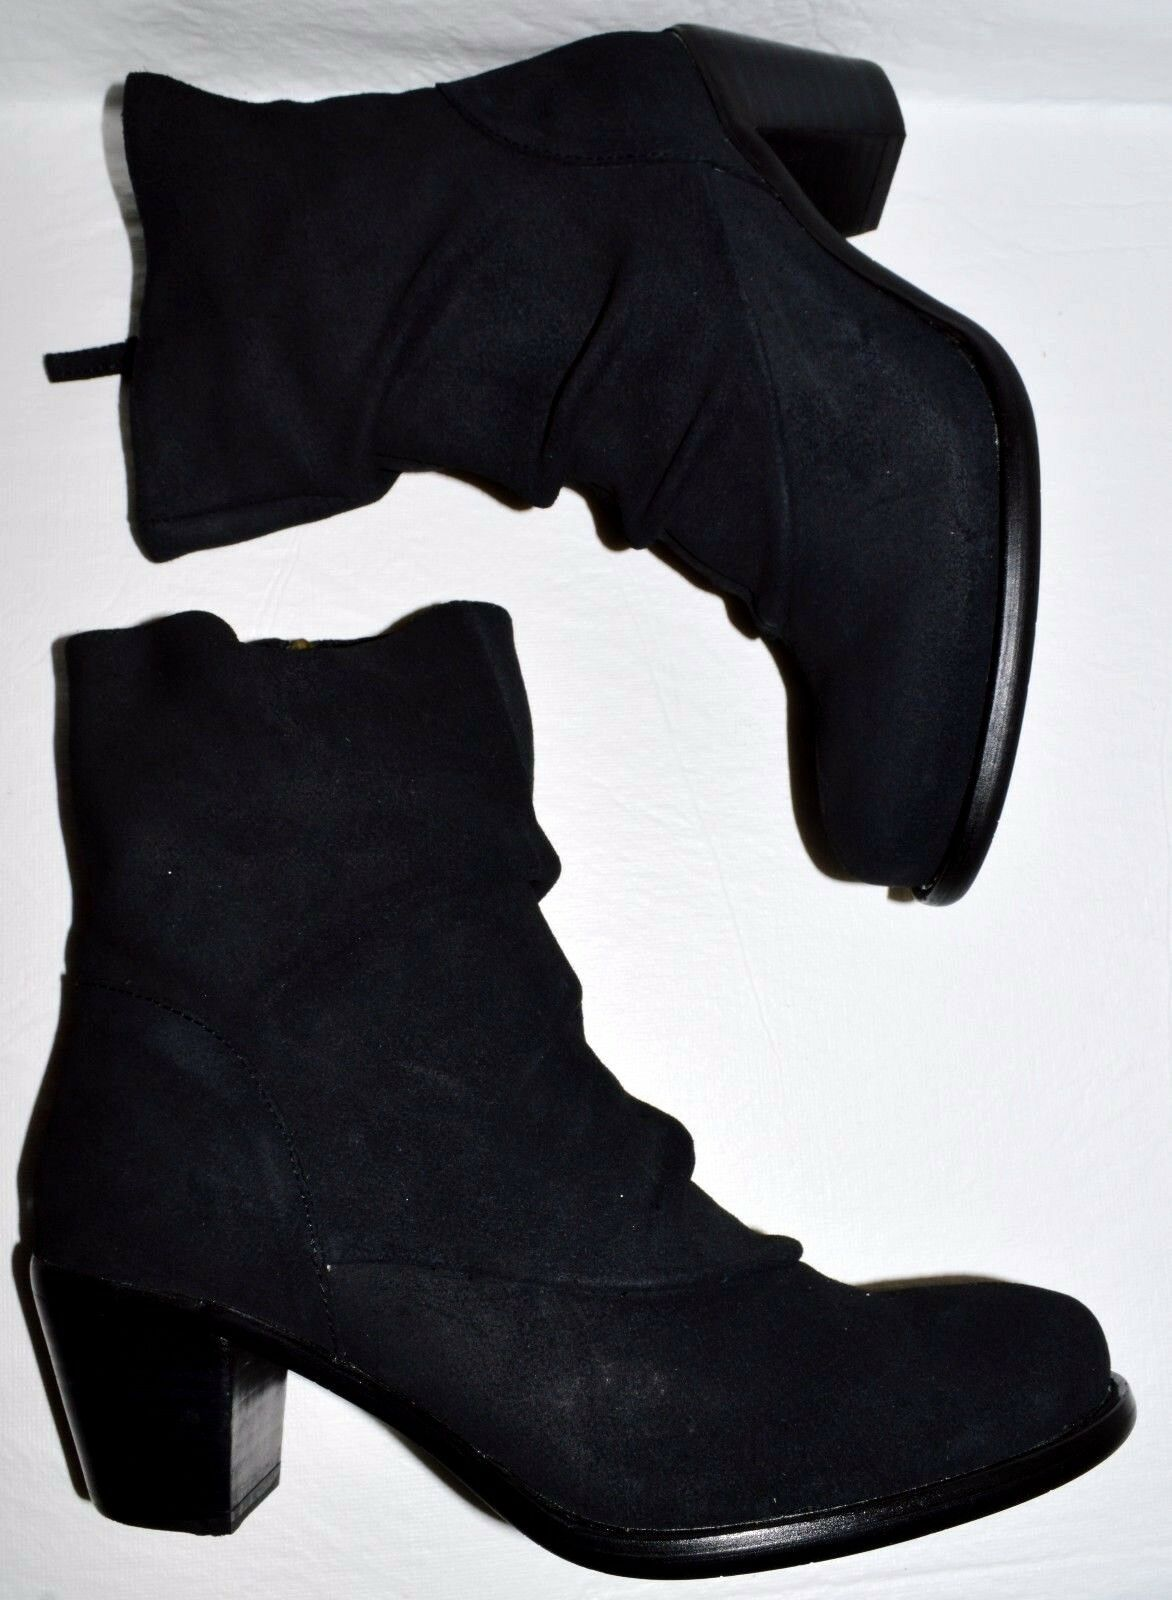 CORDANI CALZATURE UMBER NIB 310 SZ 6.5 M 37 BLACK SUEDE ANKLE BOOTS BOOTIES